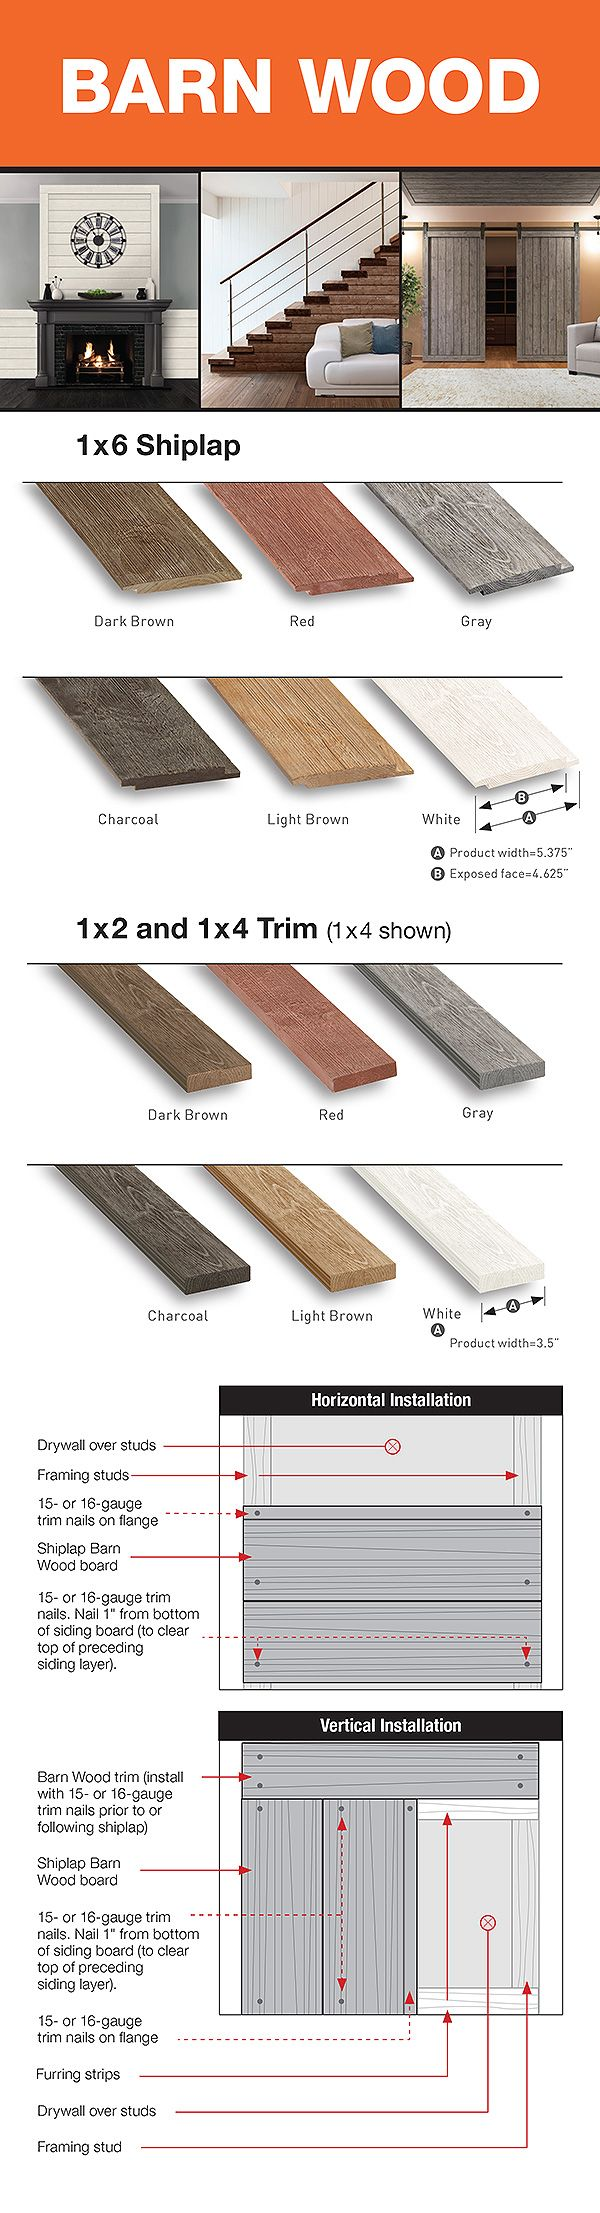 Ufp Edge 1 In X 6 In X 6 Ft Barn Wood Gray Shiplap Spruce Pine Fir Board 6 Pack 251199 The Home Depot Gray Shiplap Shiplap Wood Charcoal